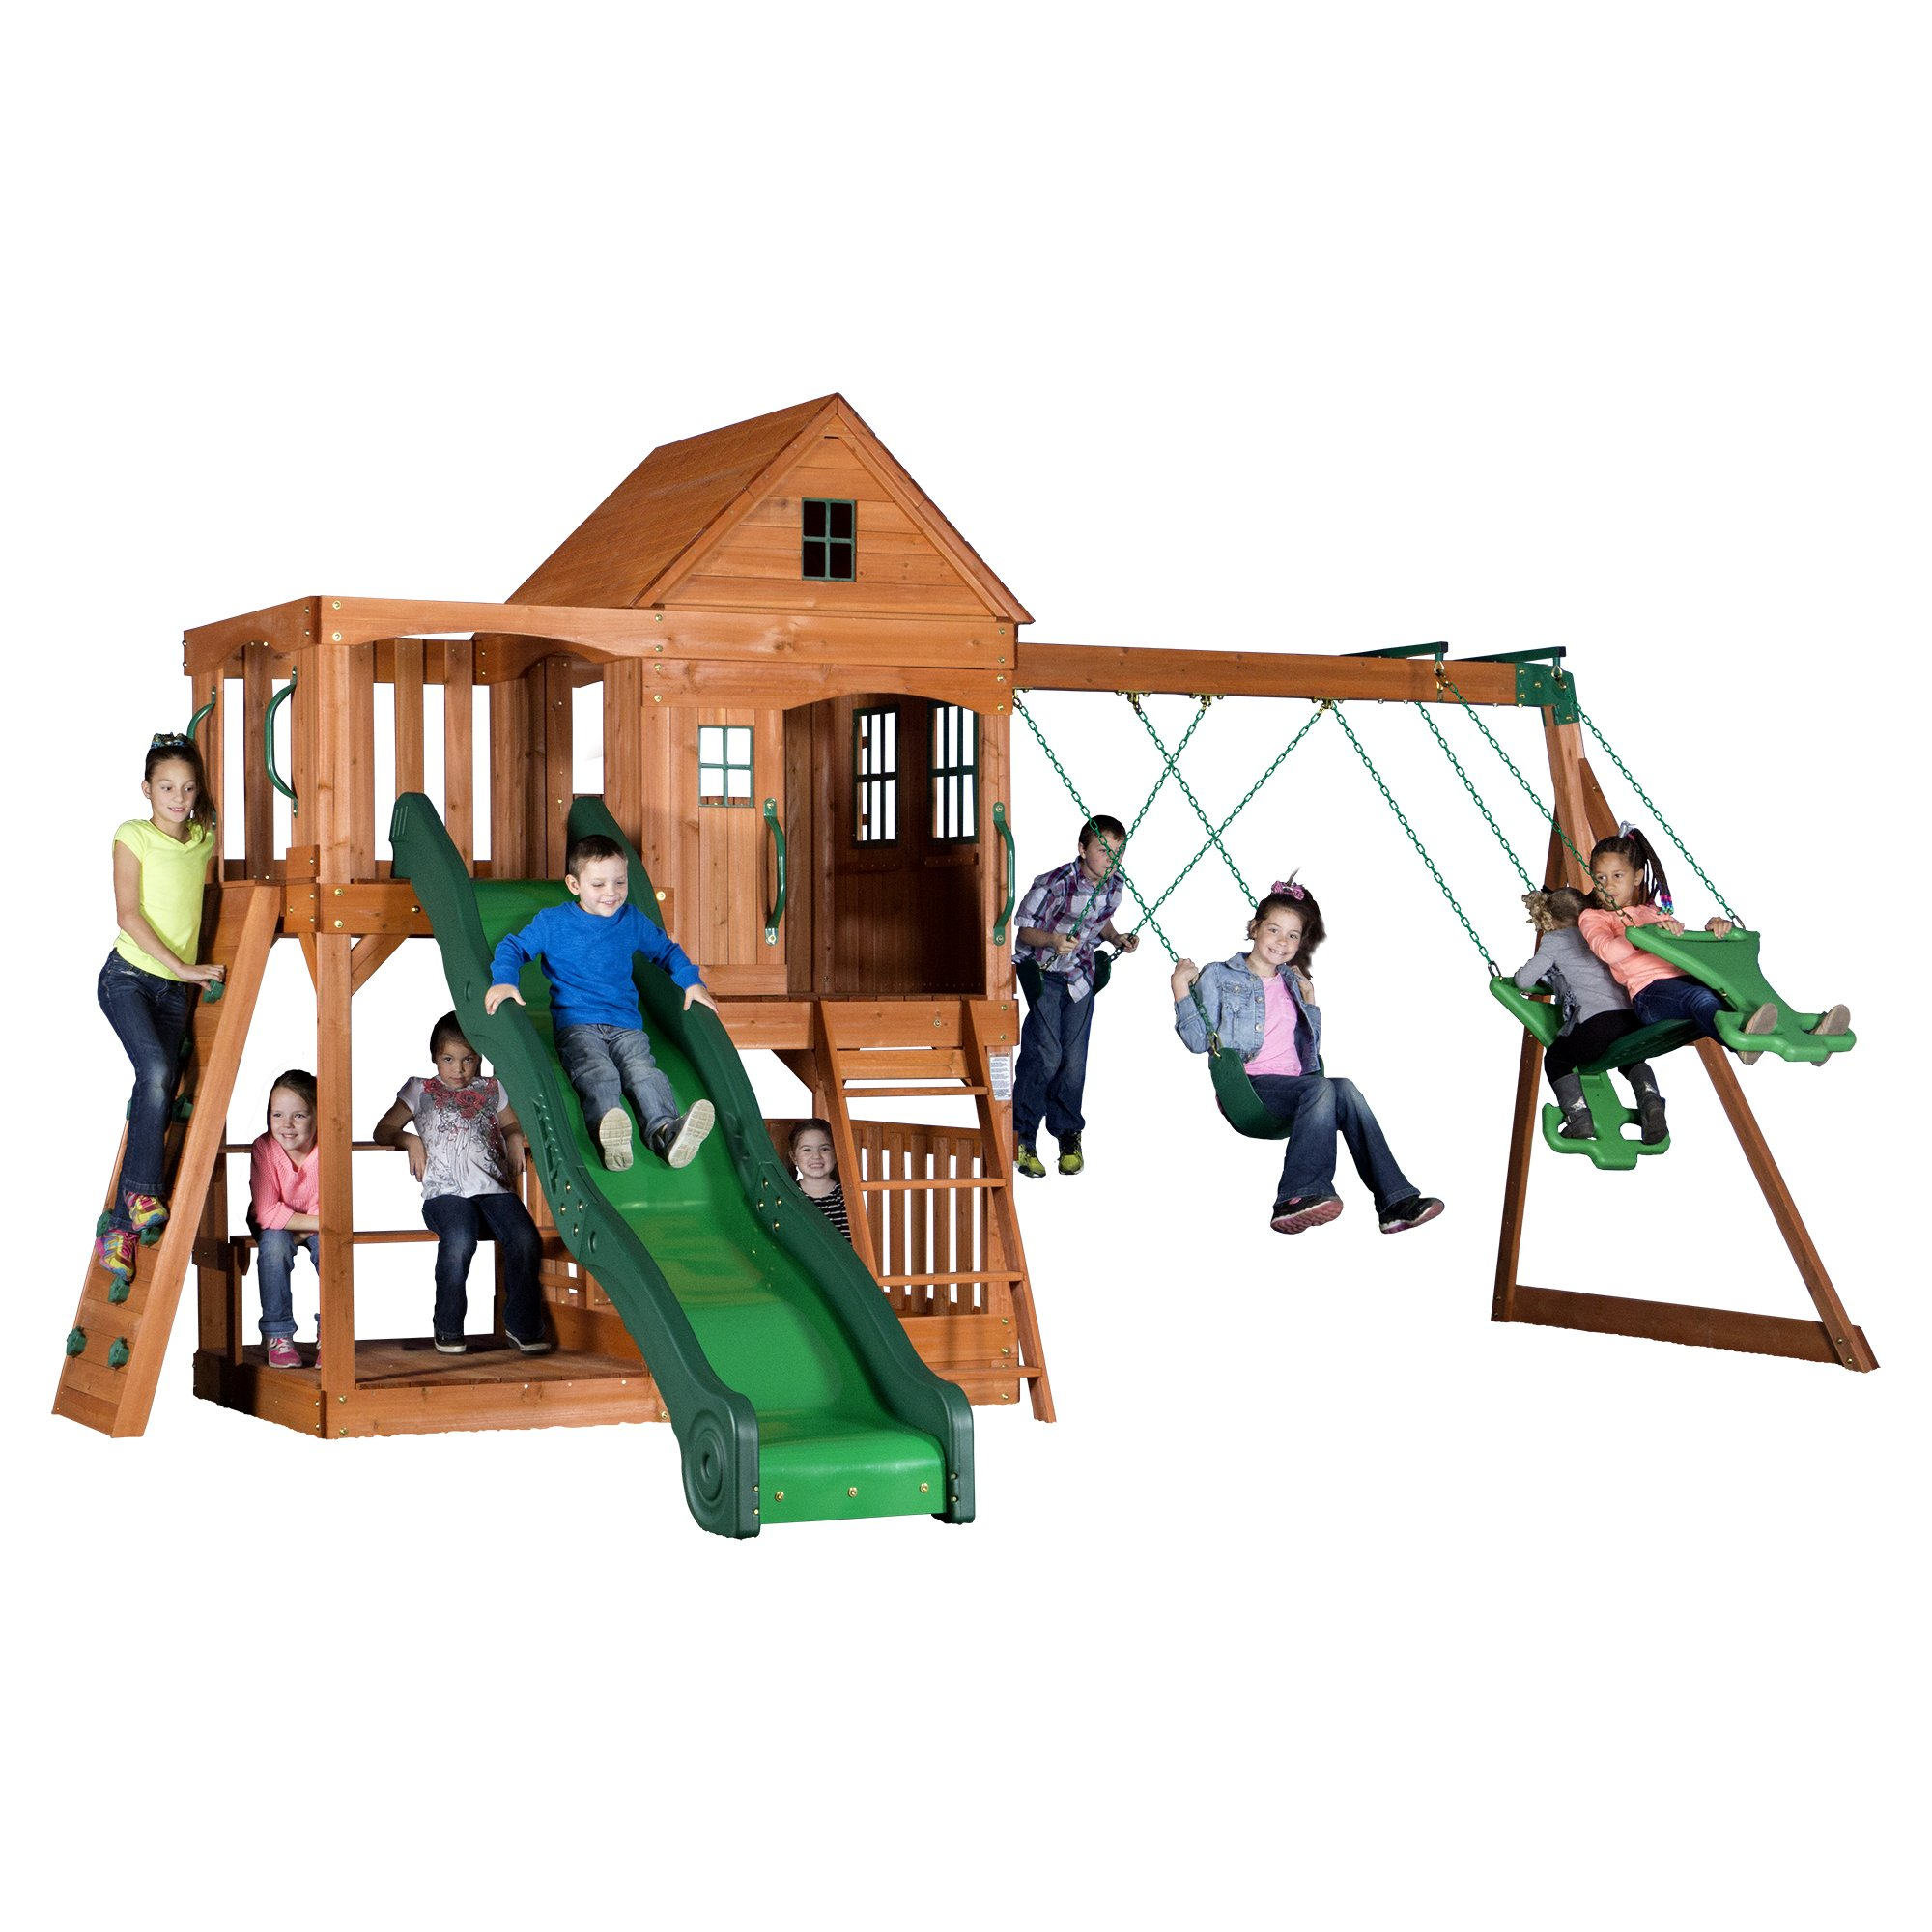 Backyard Discovery Pacific View All Cedar Wood Playset Swing Set by Backyard Discovery (Image #1)